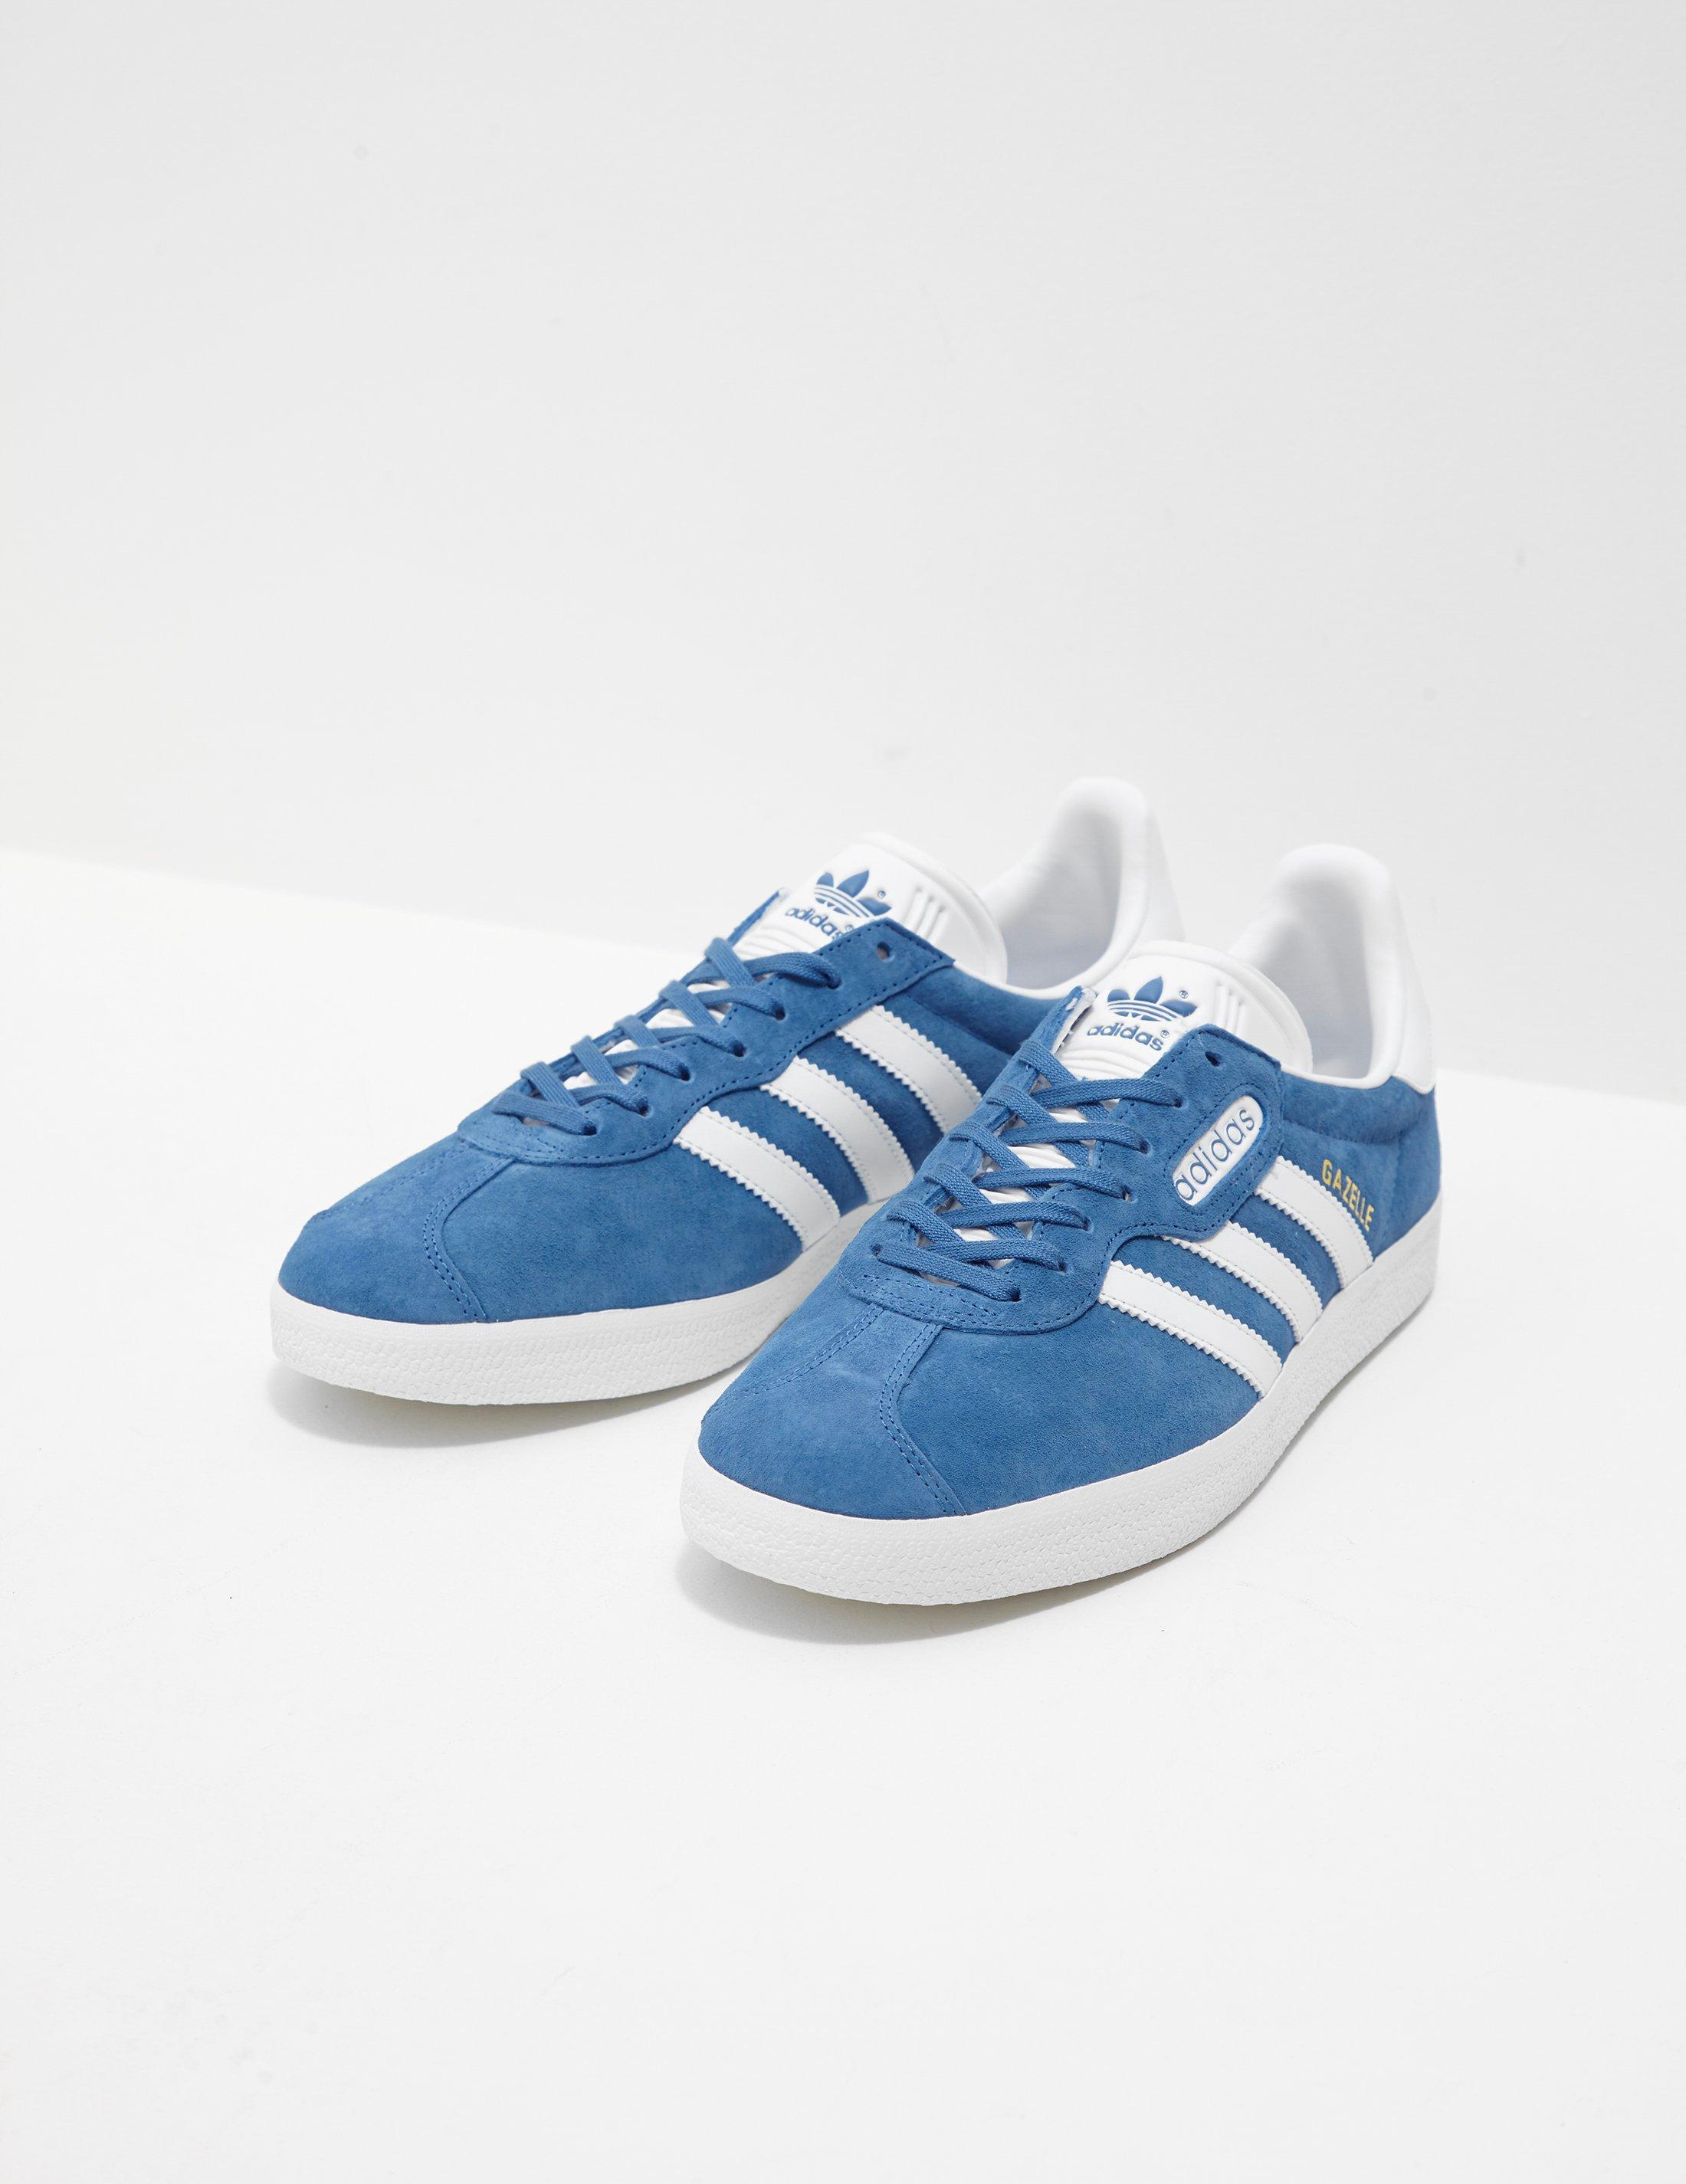 Lyst - Adidas Originals Mens Gazelle Super Blue in Blue for Men ... 4088338e7